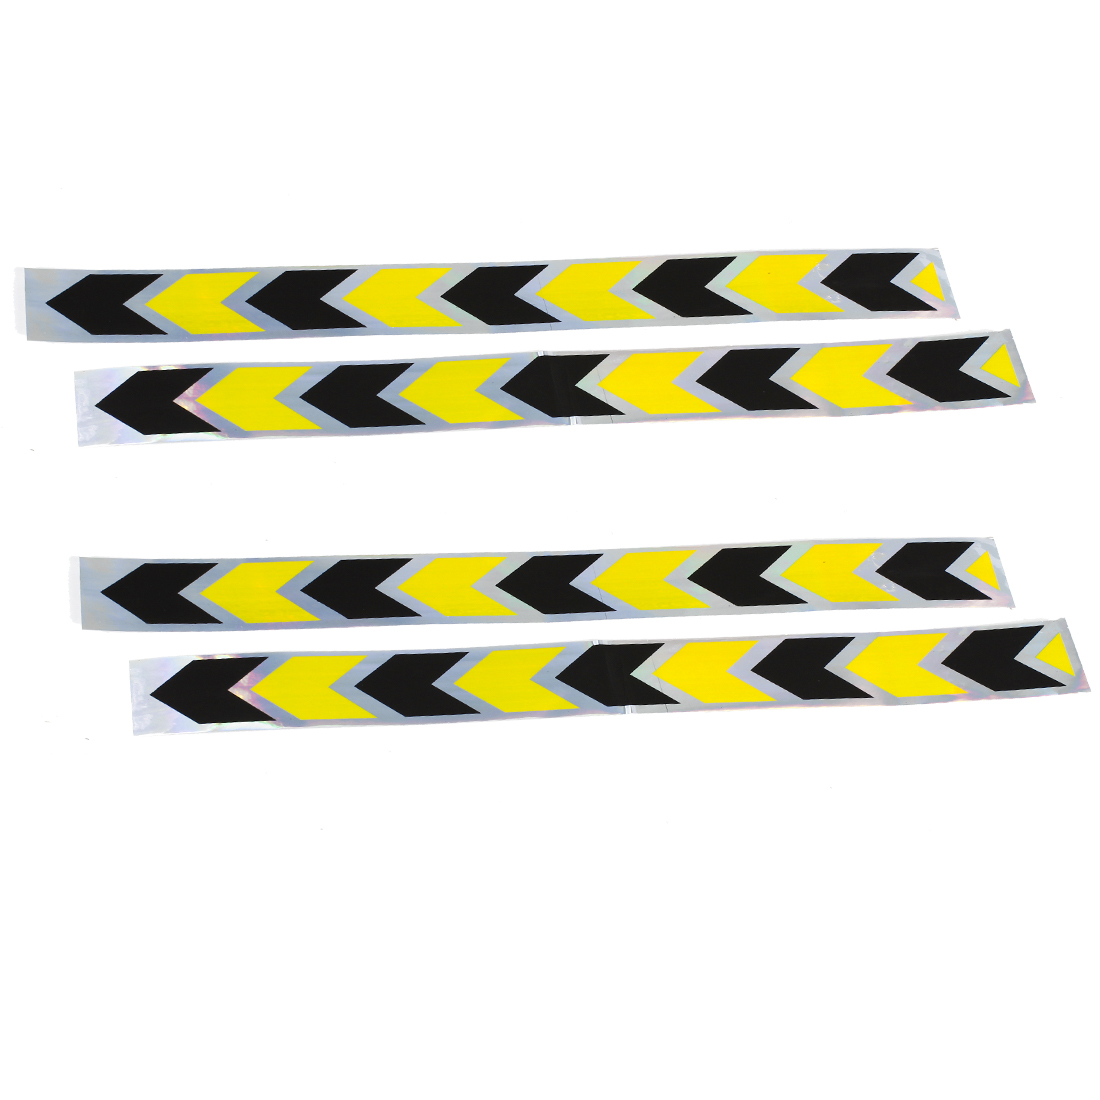 Car Automobile Arrows Pattern Safety Reflective Stickers Yellow Black 4PCS